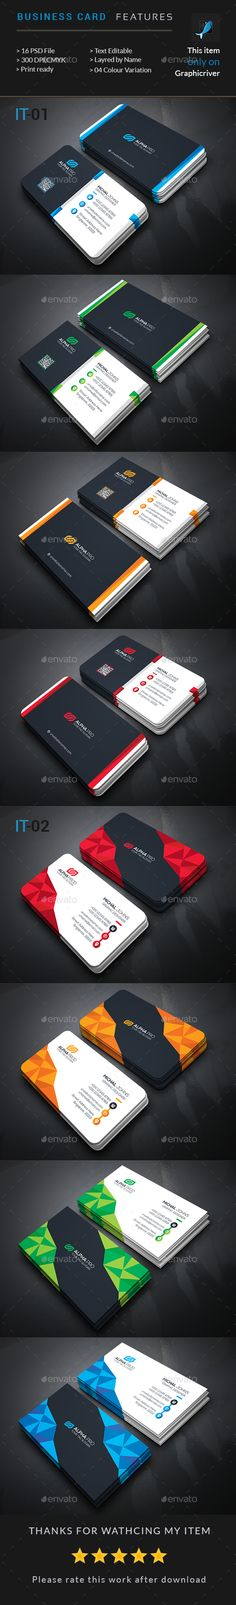 Creative card Bundle 2 In 1 - Business Cards Print Templates Download here : https://graphicriver.net/item/creative-card-bundle-2-in-1/18933667?s_rank=118&ref=Al-fatih